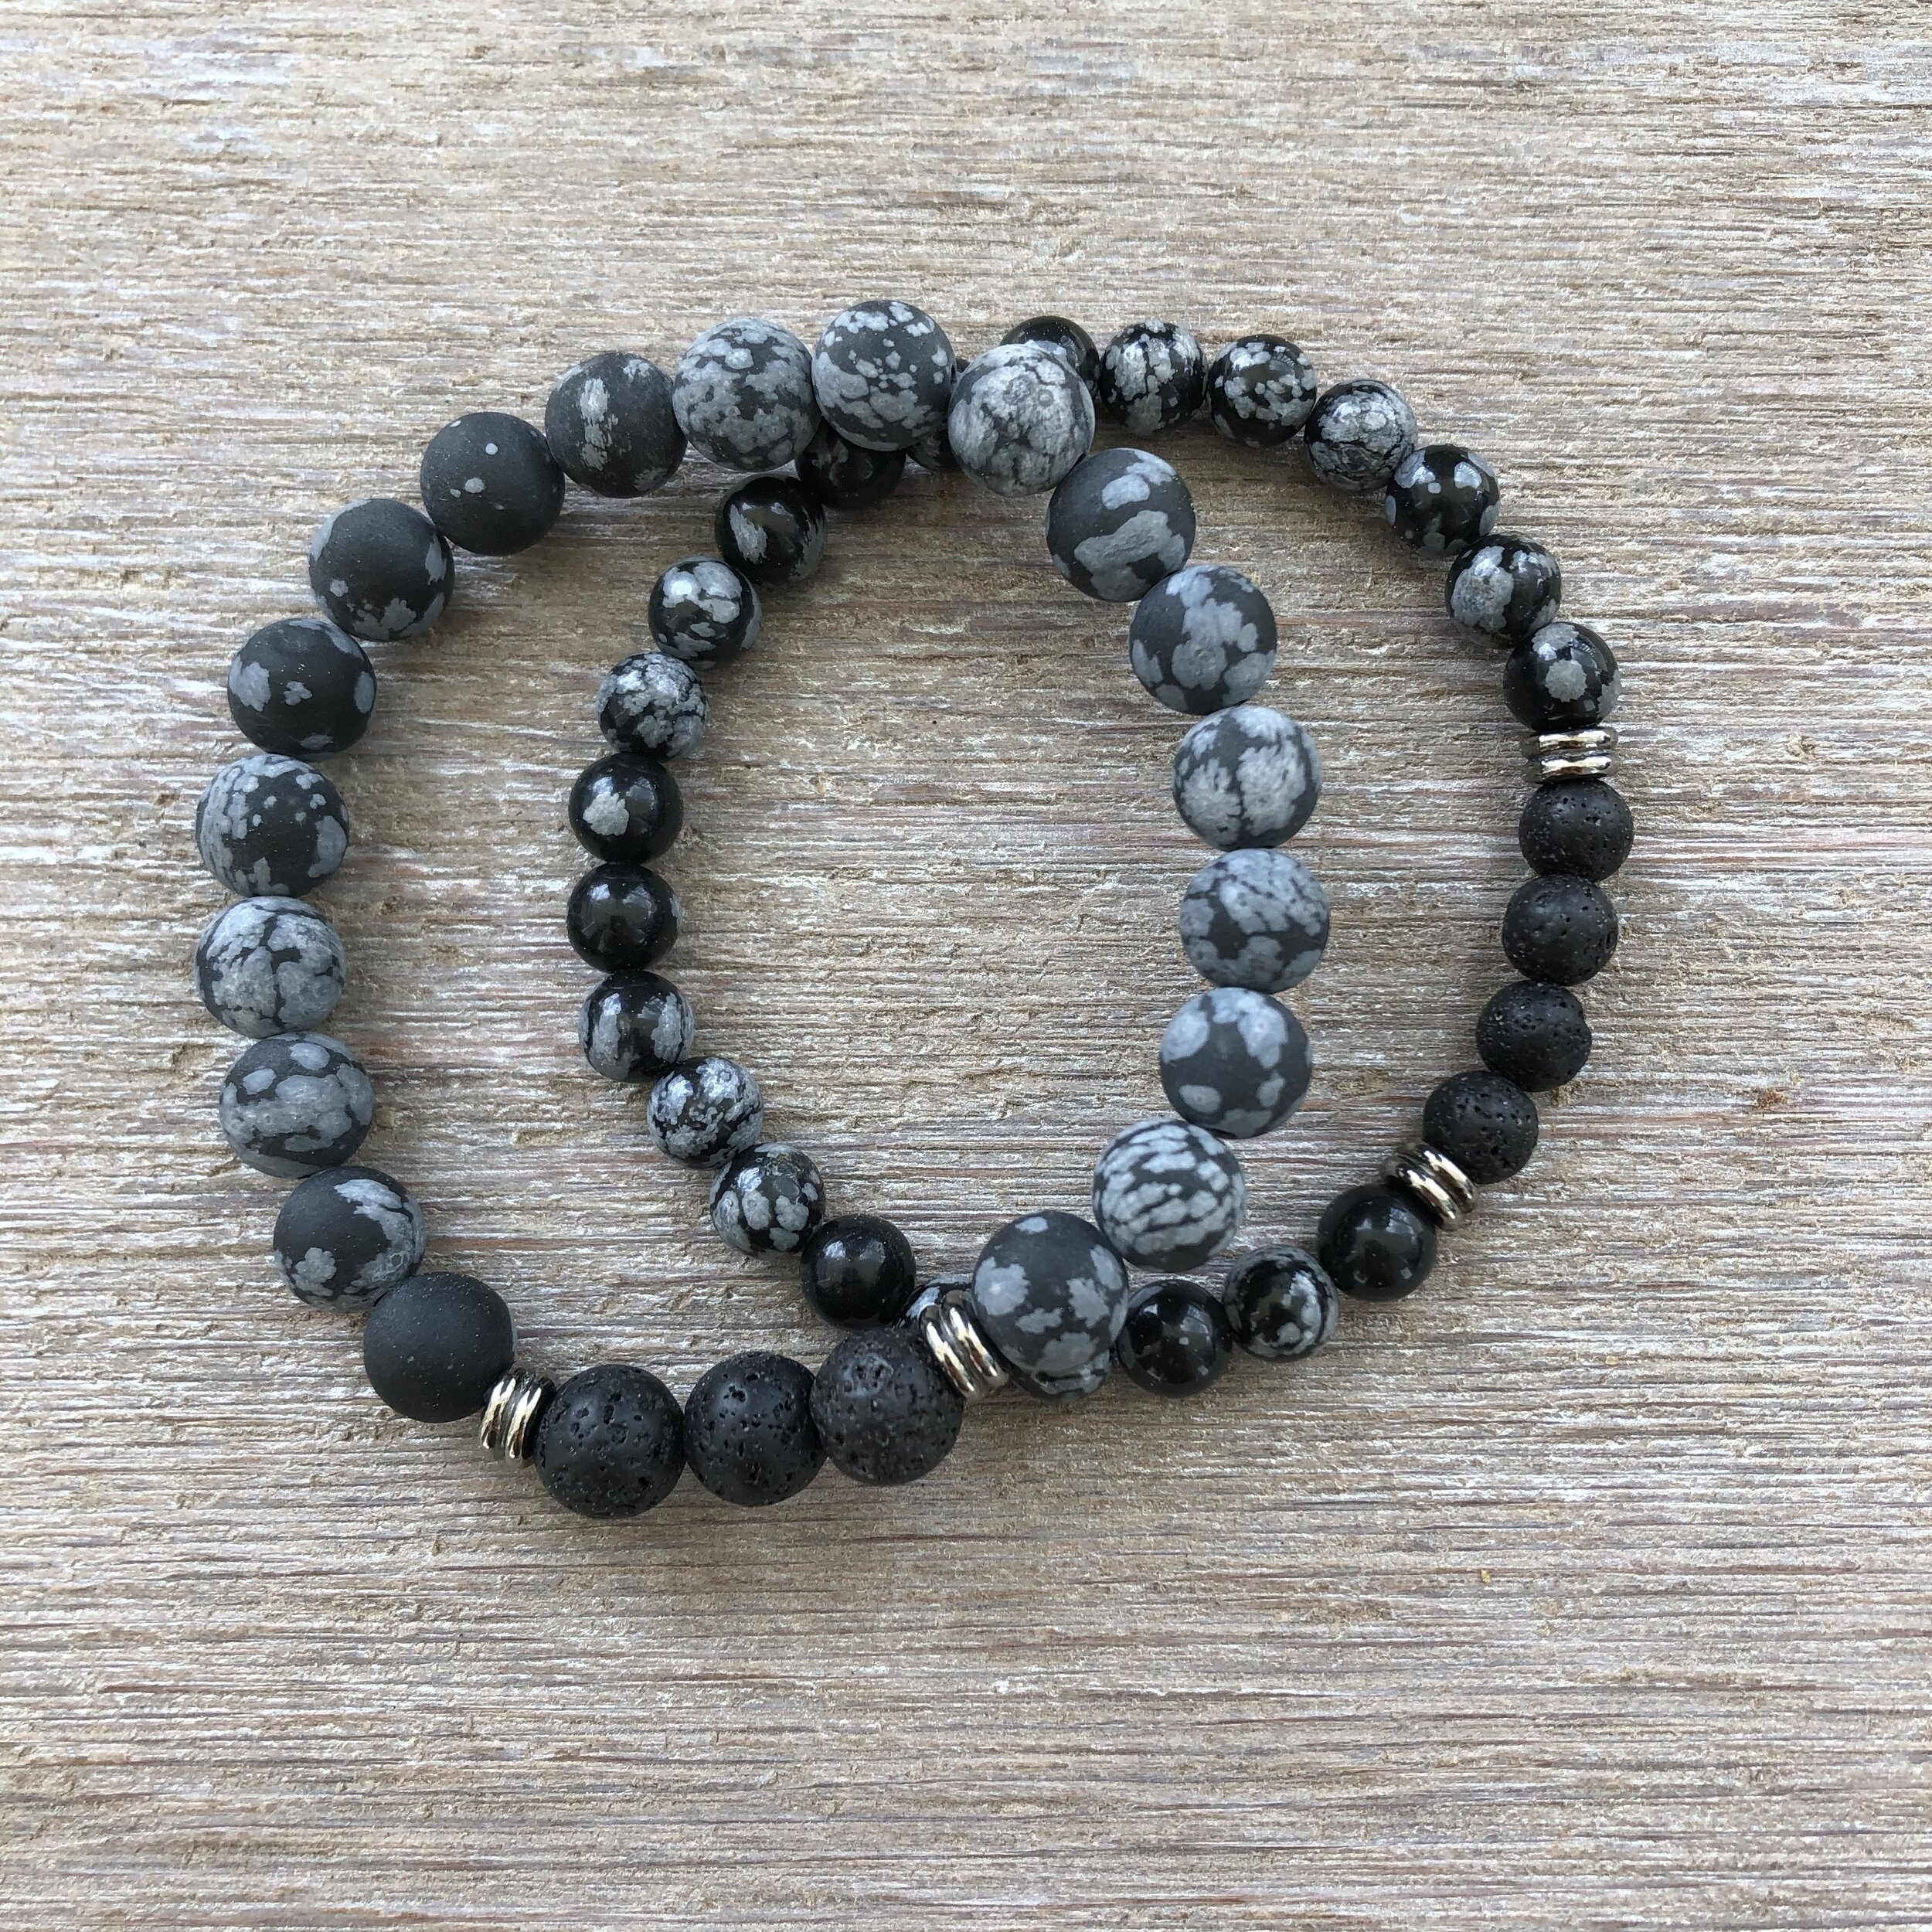 Snowflake Obsidian And Lava Rock